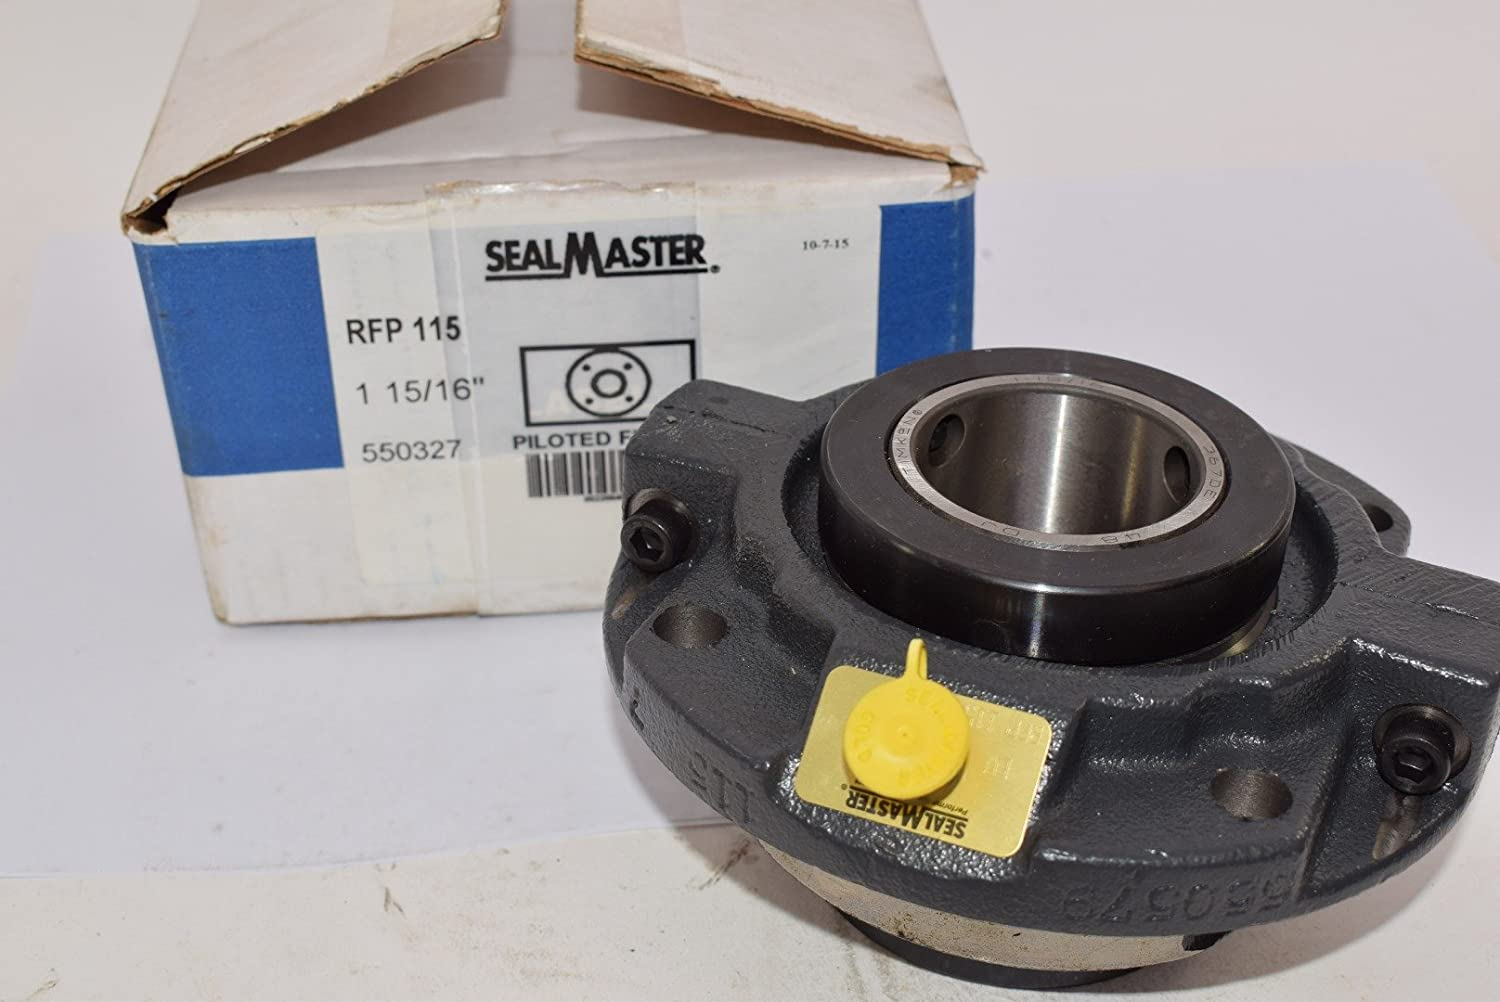 Sealmaster Latest item RFP115 40% OFF Cheap Sale 550327 Tapered Roller Bearing Piloted Flange 1